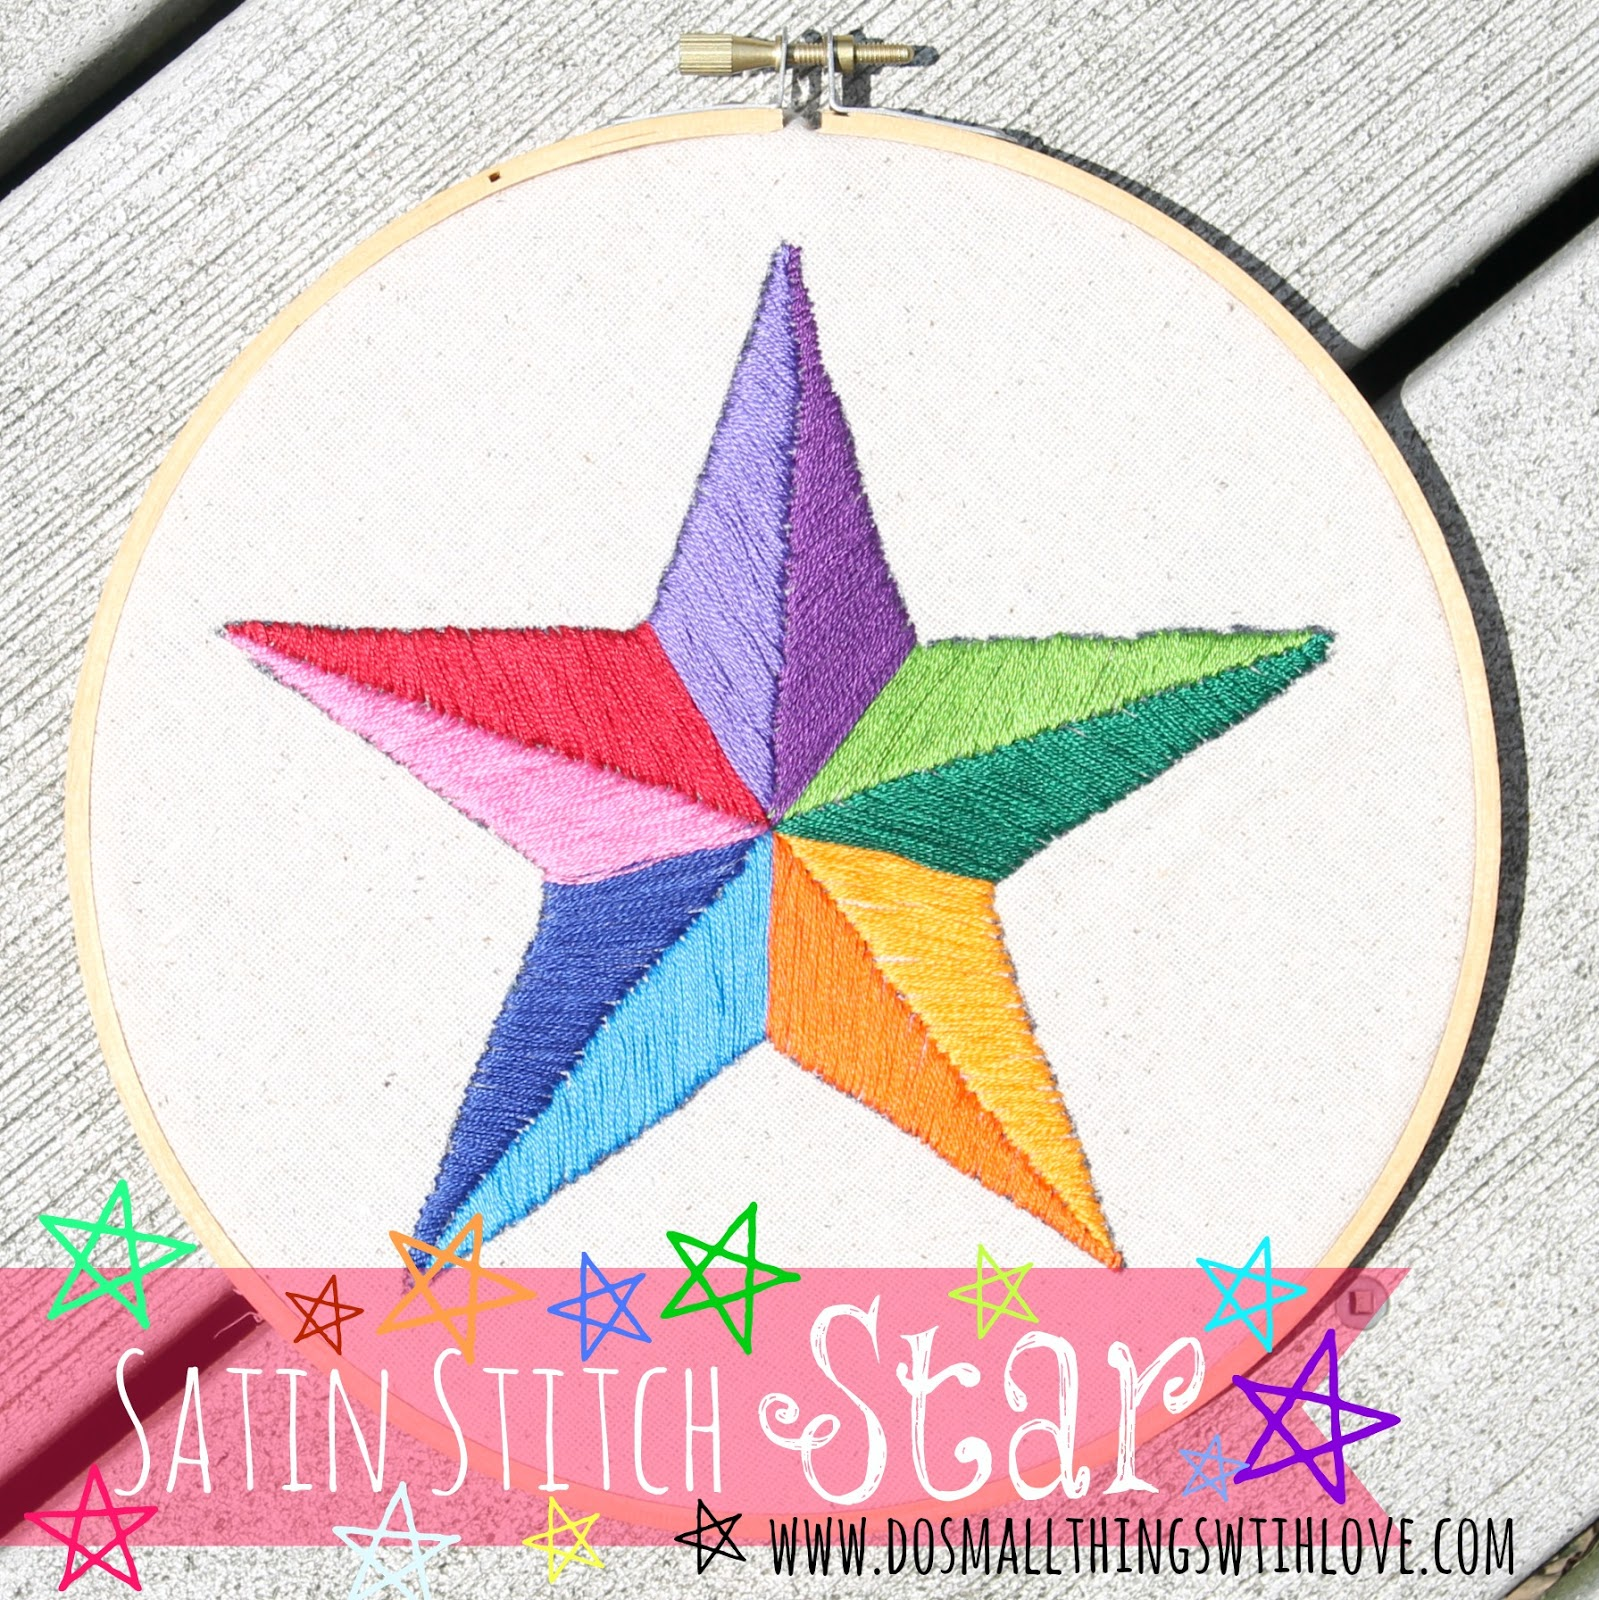 Satin Stitch Star Do Small Things With Great Love